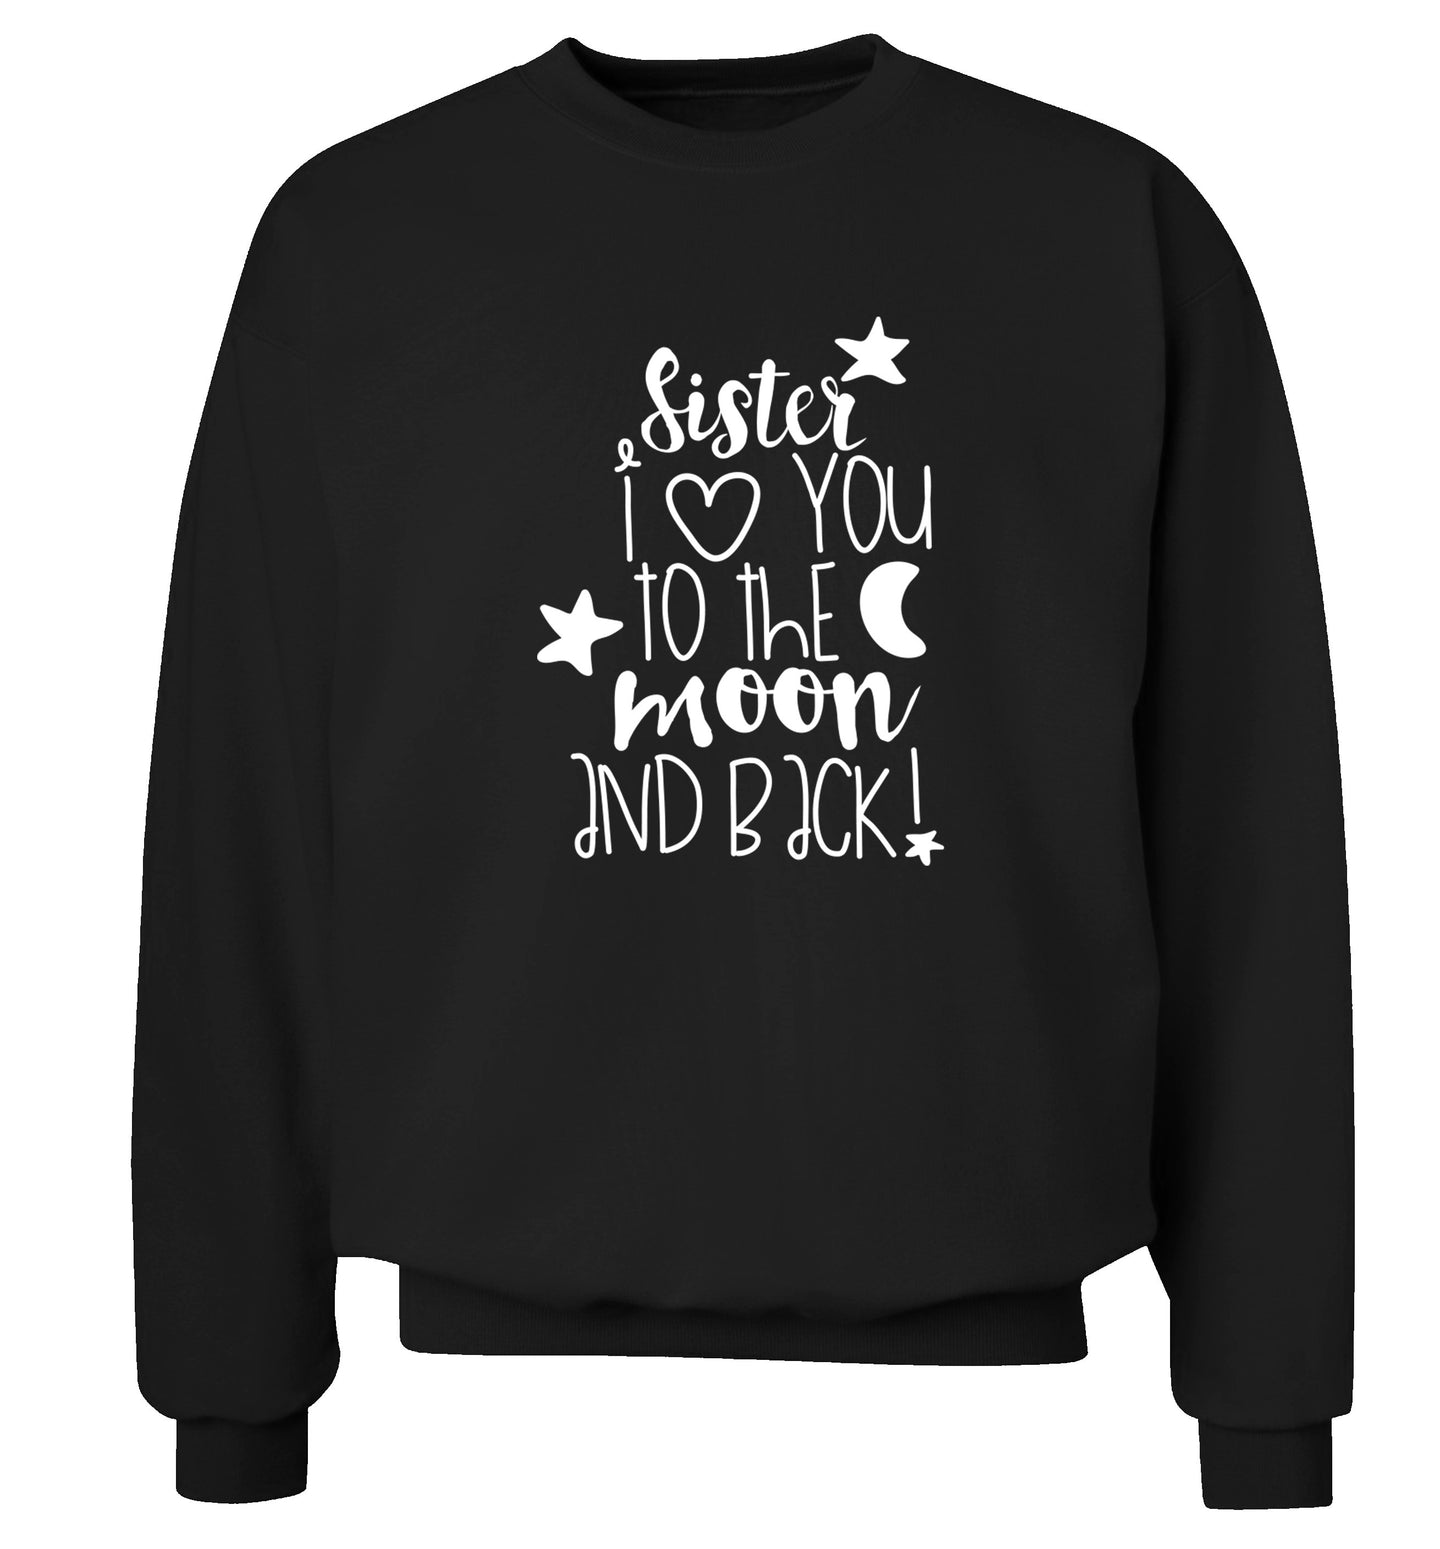 Sister I love you to the moon and back Adult's unisex black  sweater 2XL